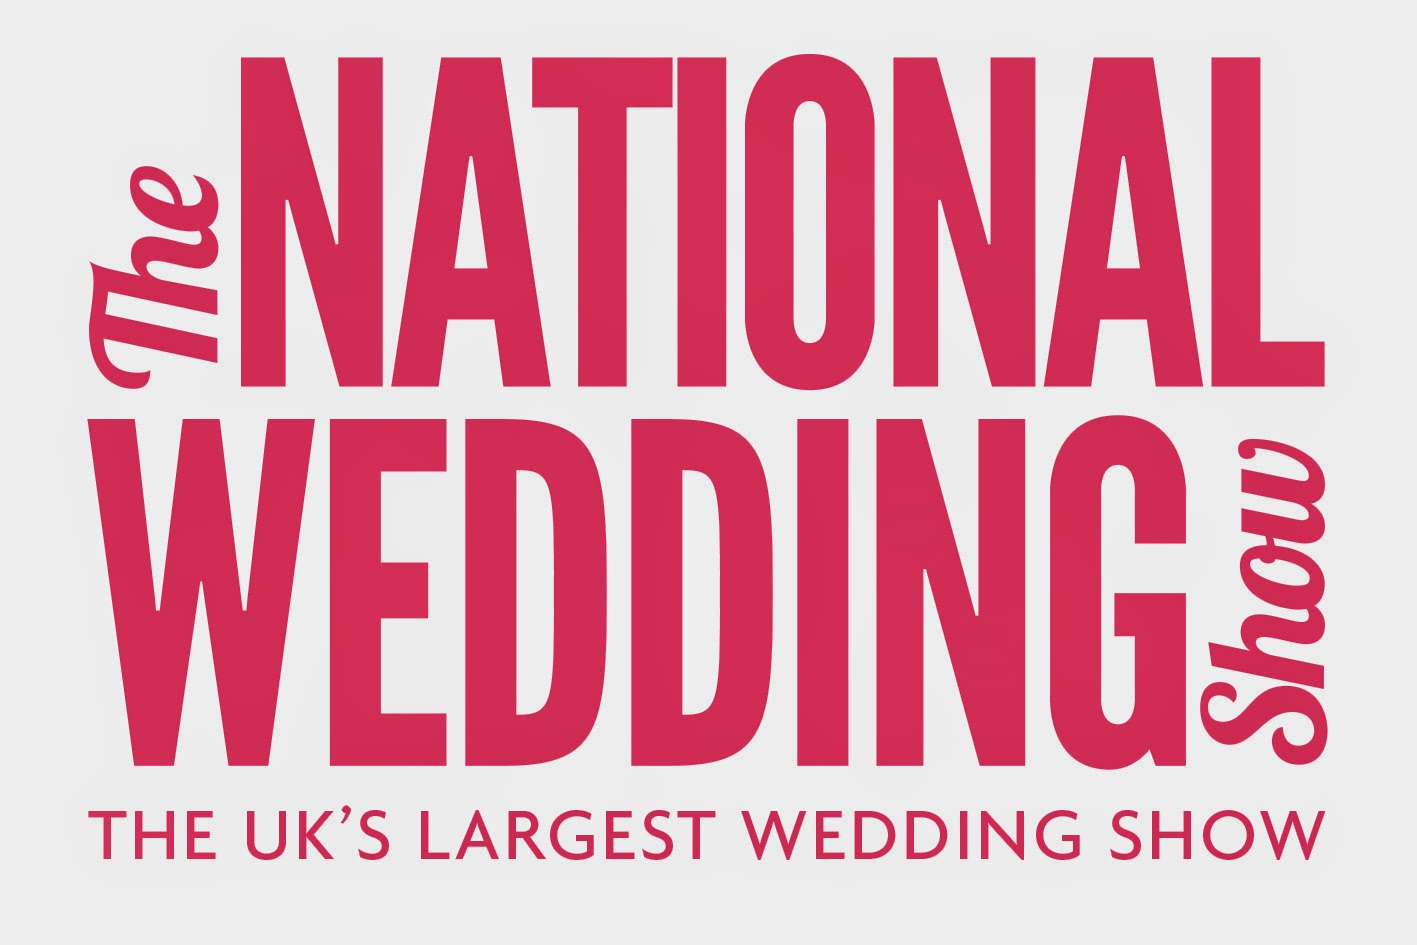 Meet us at the National Wedding Show